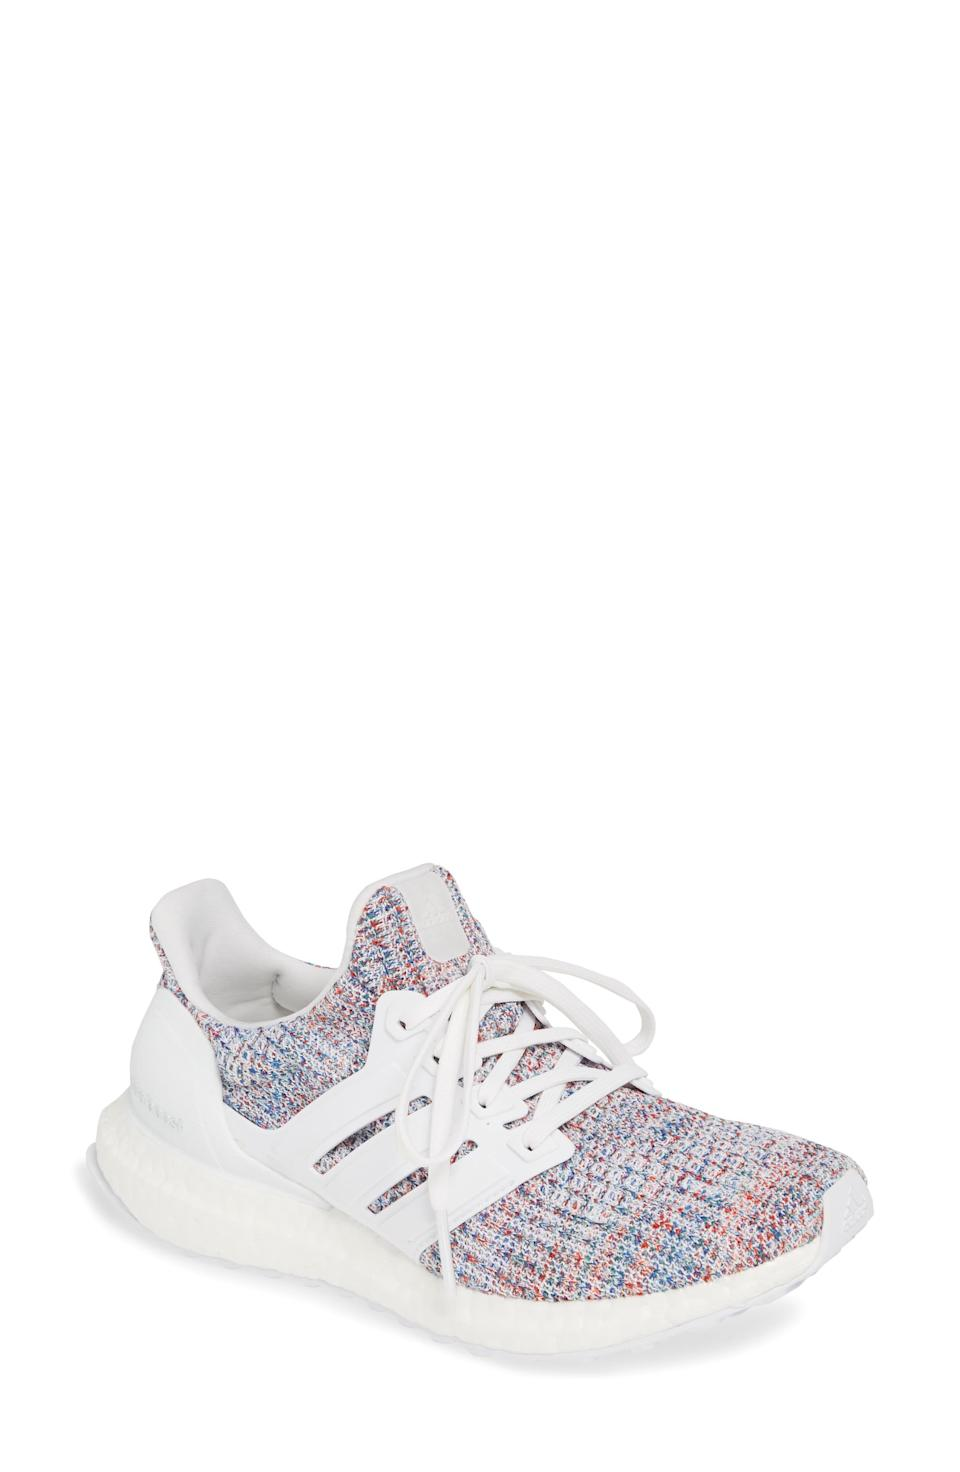 """<p><strong>Adidas</strong></p><p>adidas.com</p><p><strong>$180.00</strong></p><p><a href=""""https://go.redirectingat.com?id=74968X1596630&url=https%3A%2F%2Fwww.adidas.com%2Fus%2Fultraboost-20-shoes%2FFX8277.html&sref=https%3A%2F%2Fwww.harpersbazaar.com%2Fbeauty%2Fhealth%2Fg23900366%2Fbest-fitness-gifts-ideas%2F"""" rel=""""nofollow noopener"""" target=""""_blank"""" data-ylk=""""slk:Shop Now"""" class=""""link rapid-noclick-resp"""">Shop Now</a></p><p>The Adidas Ultra Boost is the only lightweight running shoe you need in your arsenal. </p>"""